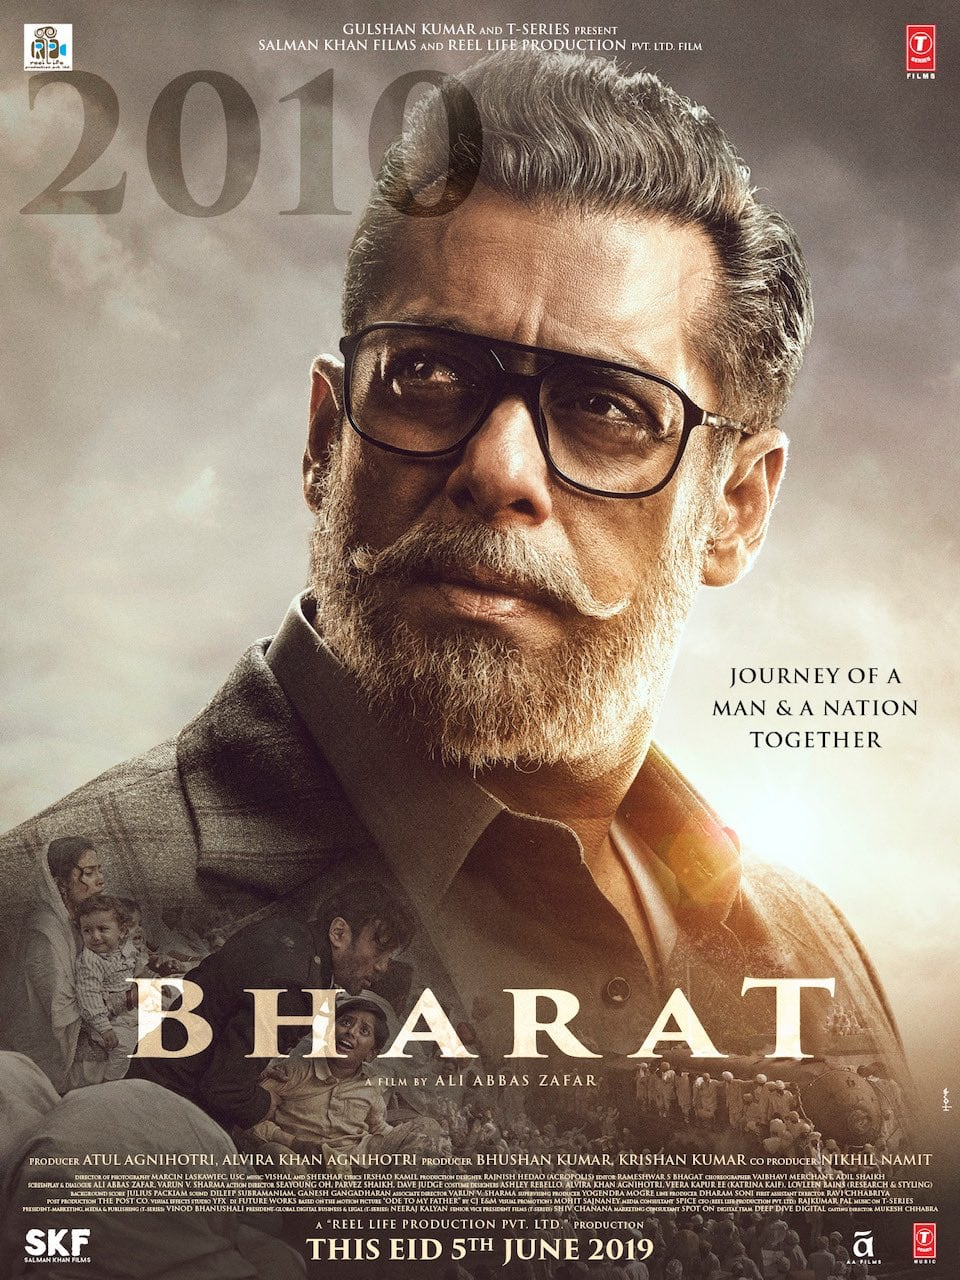 Salman Khan Took This Many Hours For Make-Up To Perfectly Achieve The Old Man Look For Bharat!